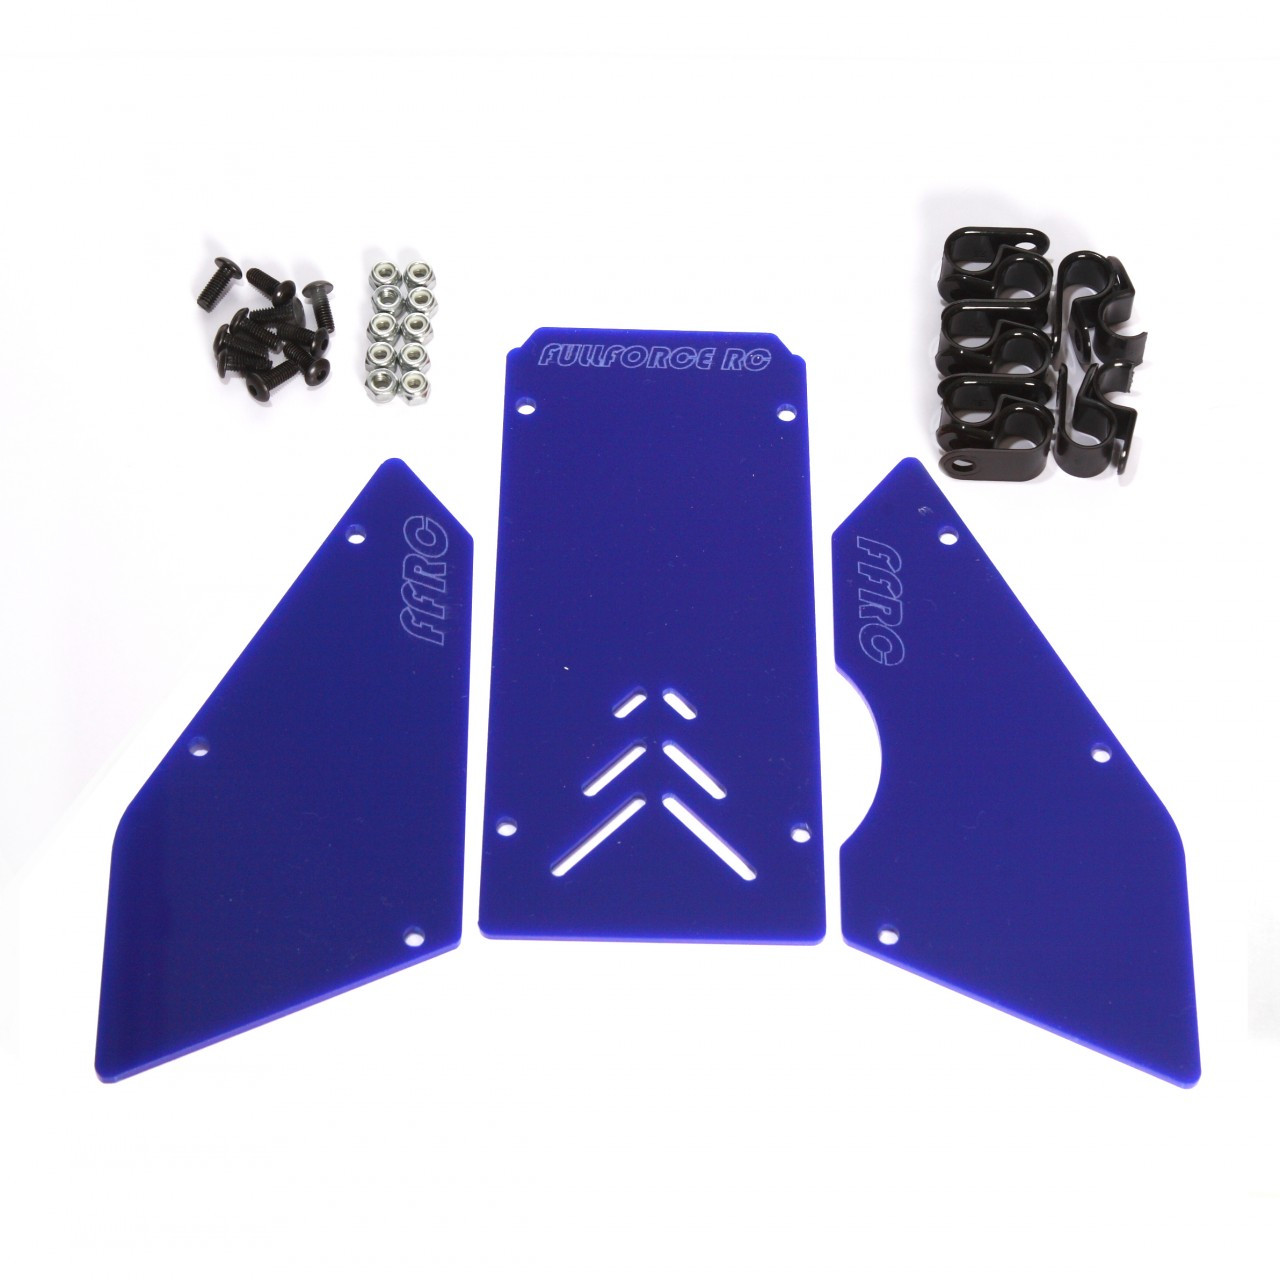 HPI Baja 3 piece windows available in Solid Blue!  Complete with install hardware.